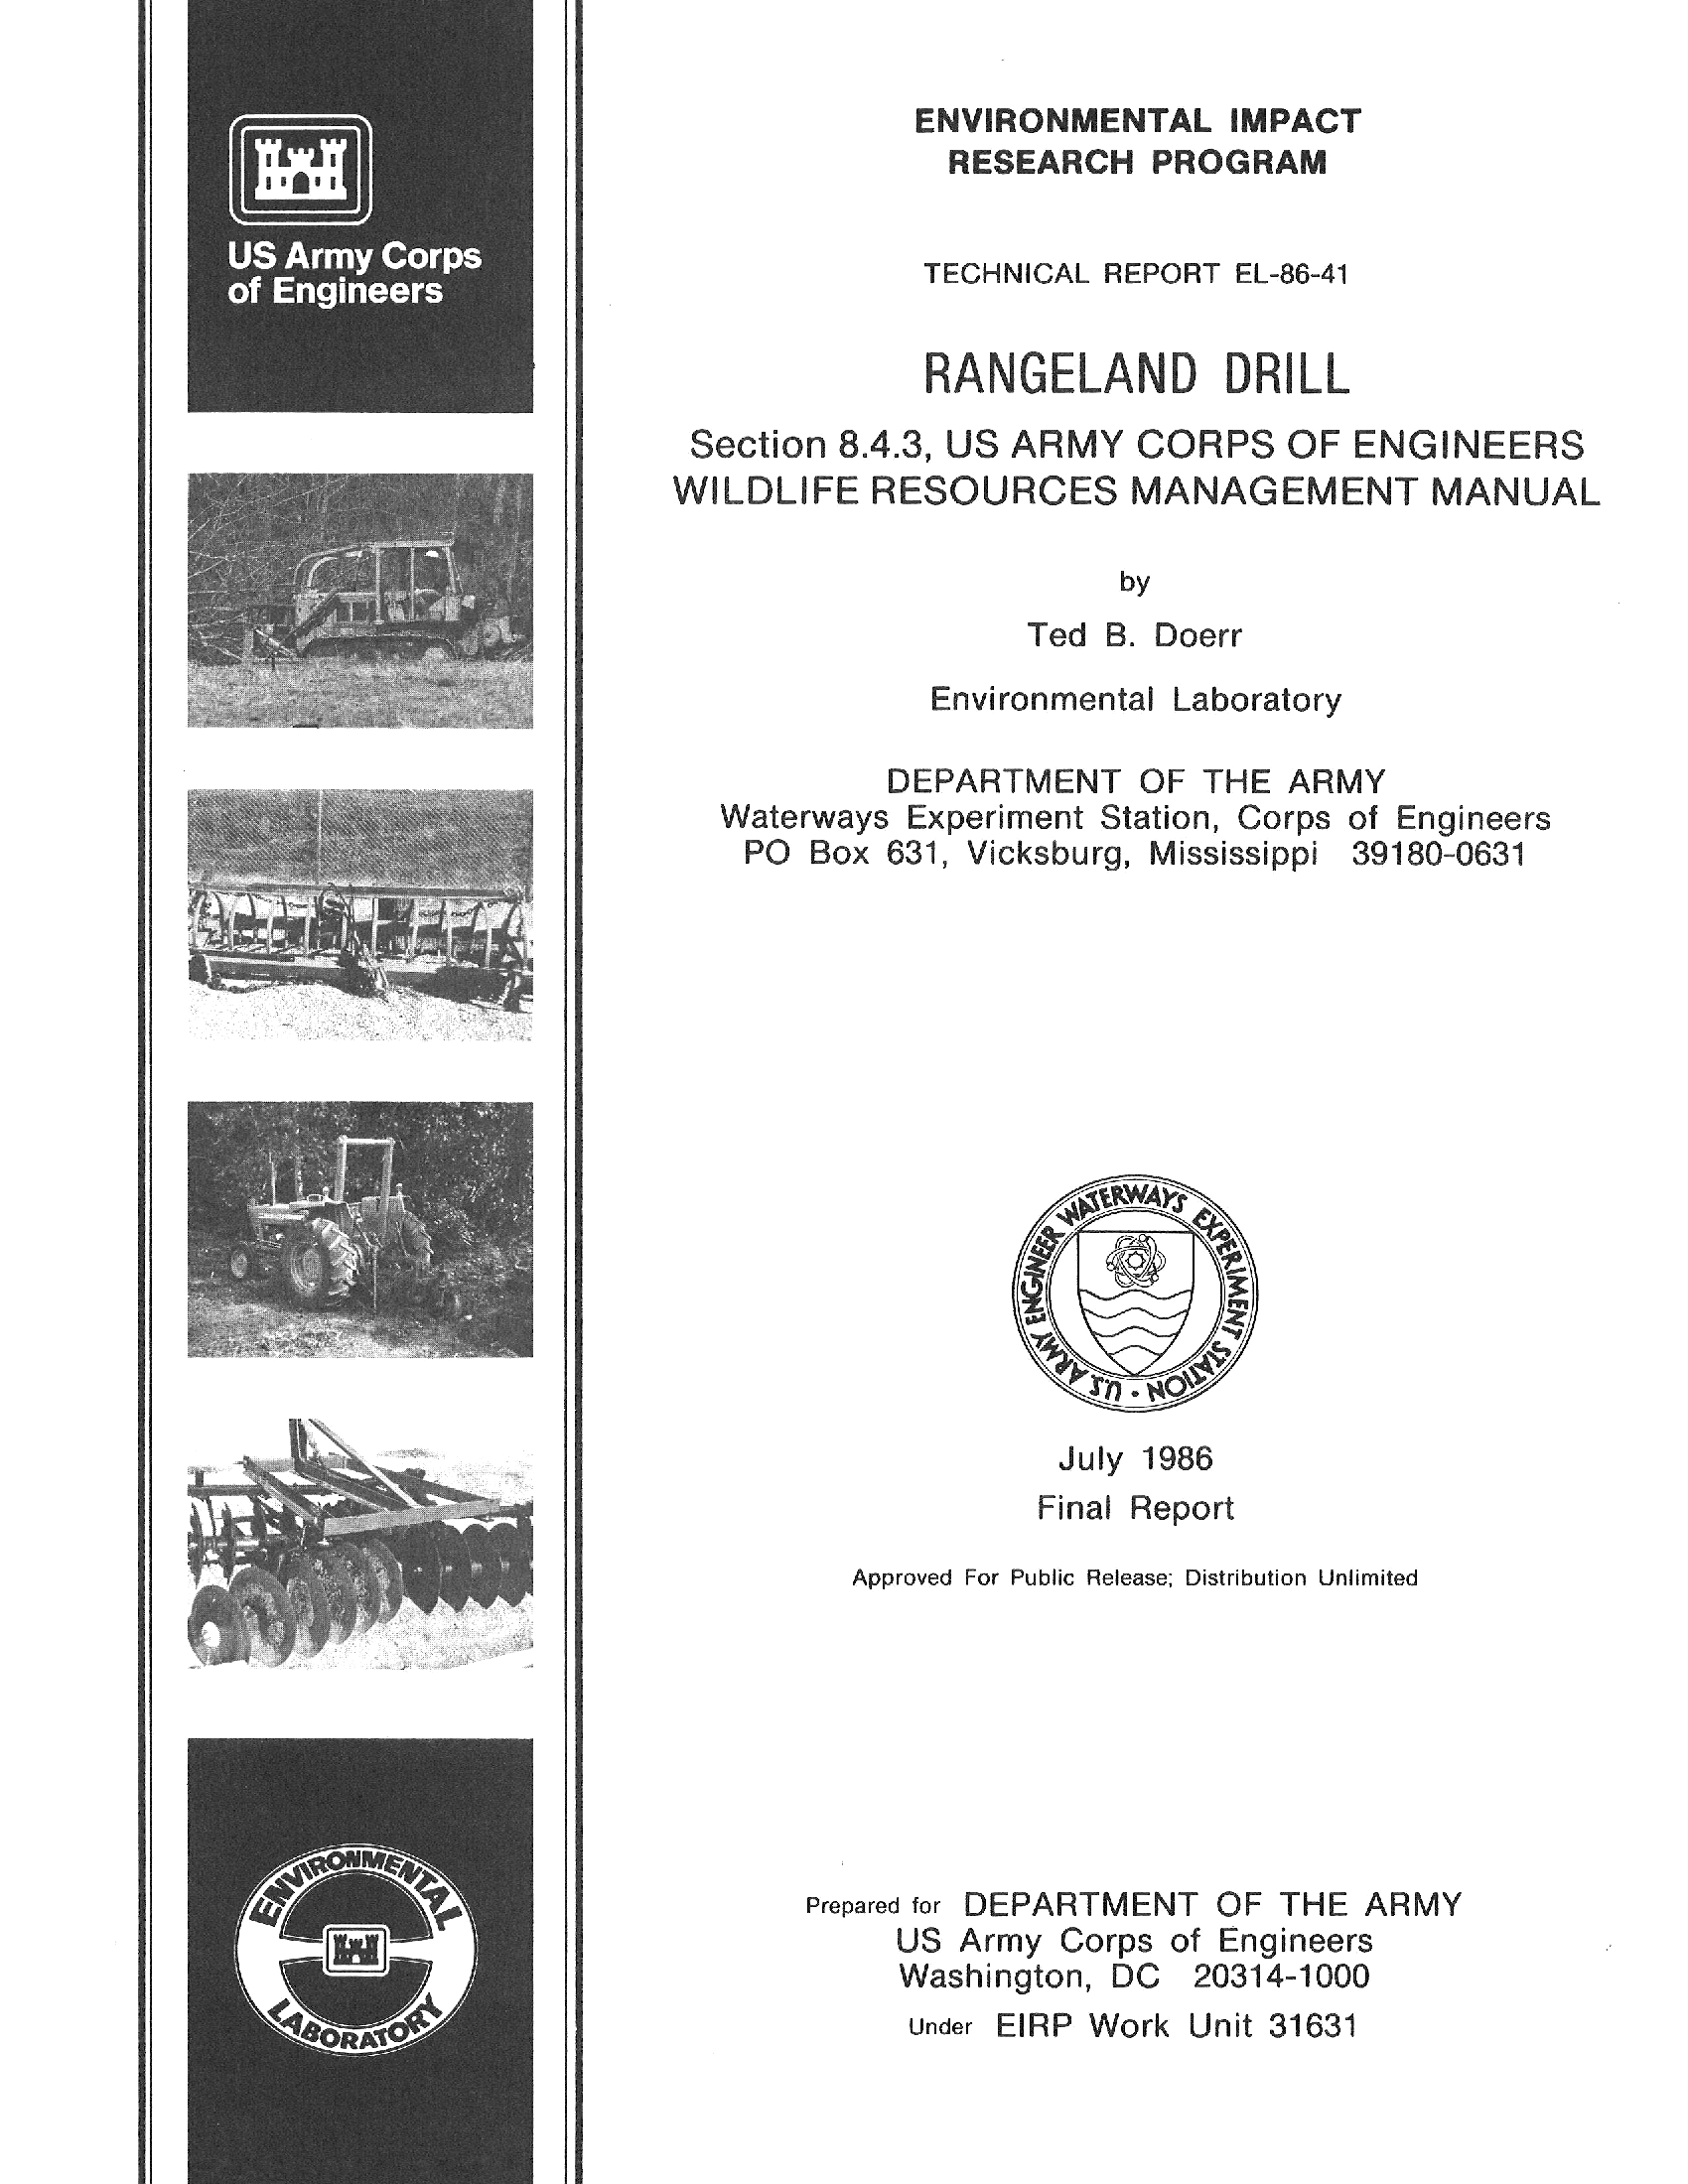 Rangeland drill: Section 8 4 3, US Army Corps of Engineers